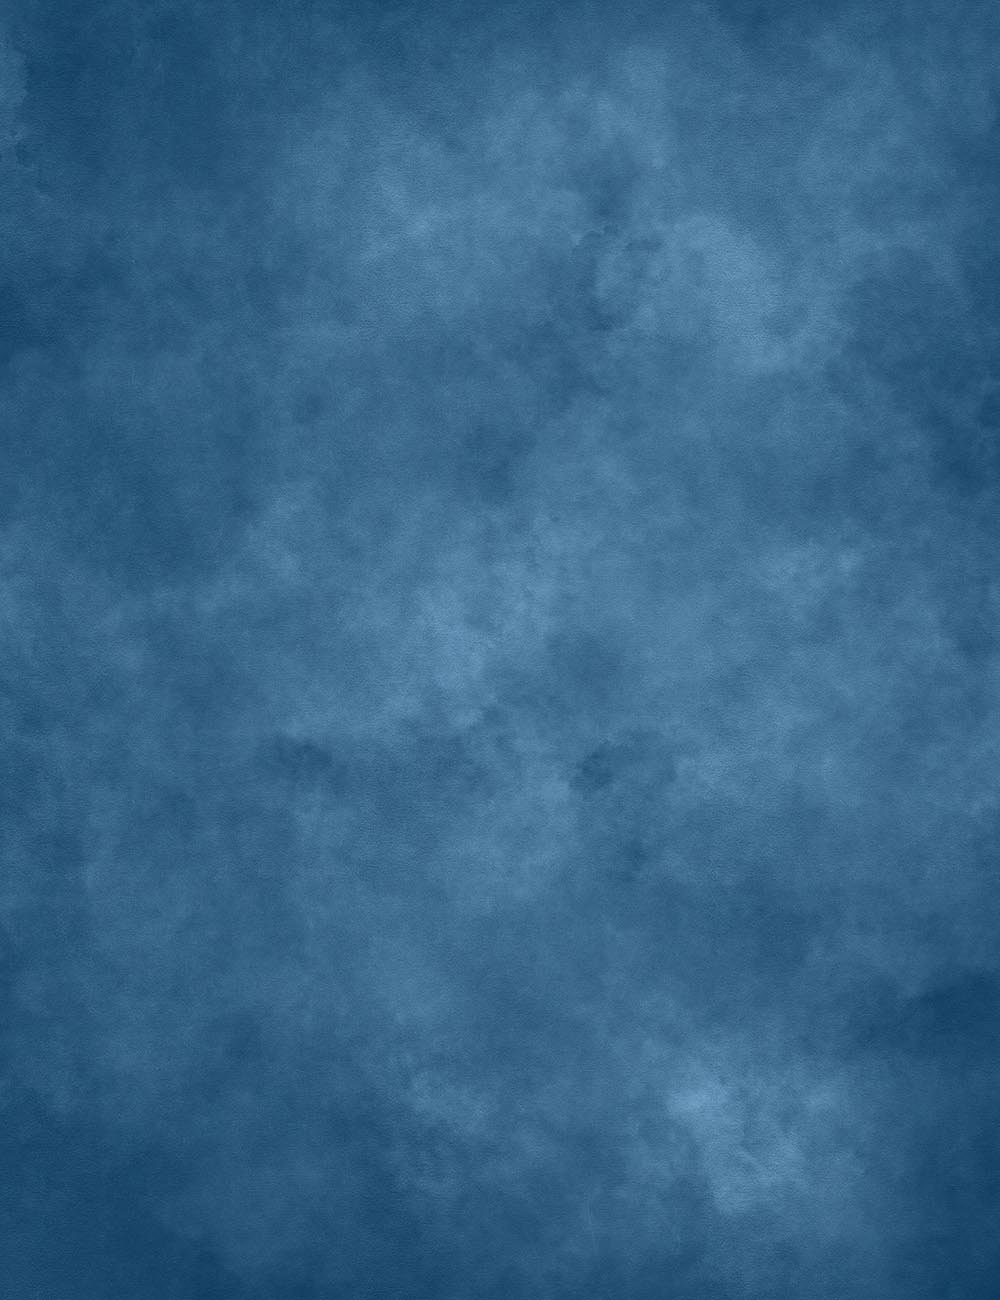 Pinted Blue Texture Old Master Photography Backdrop J-0731